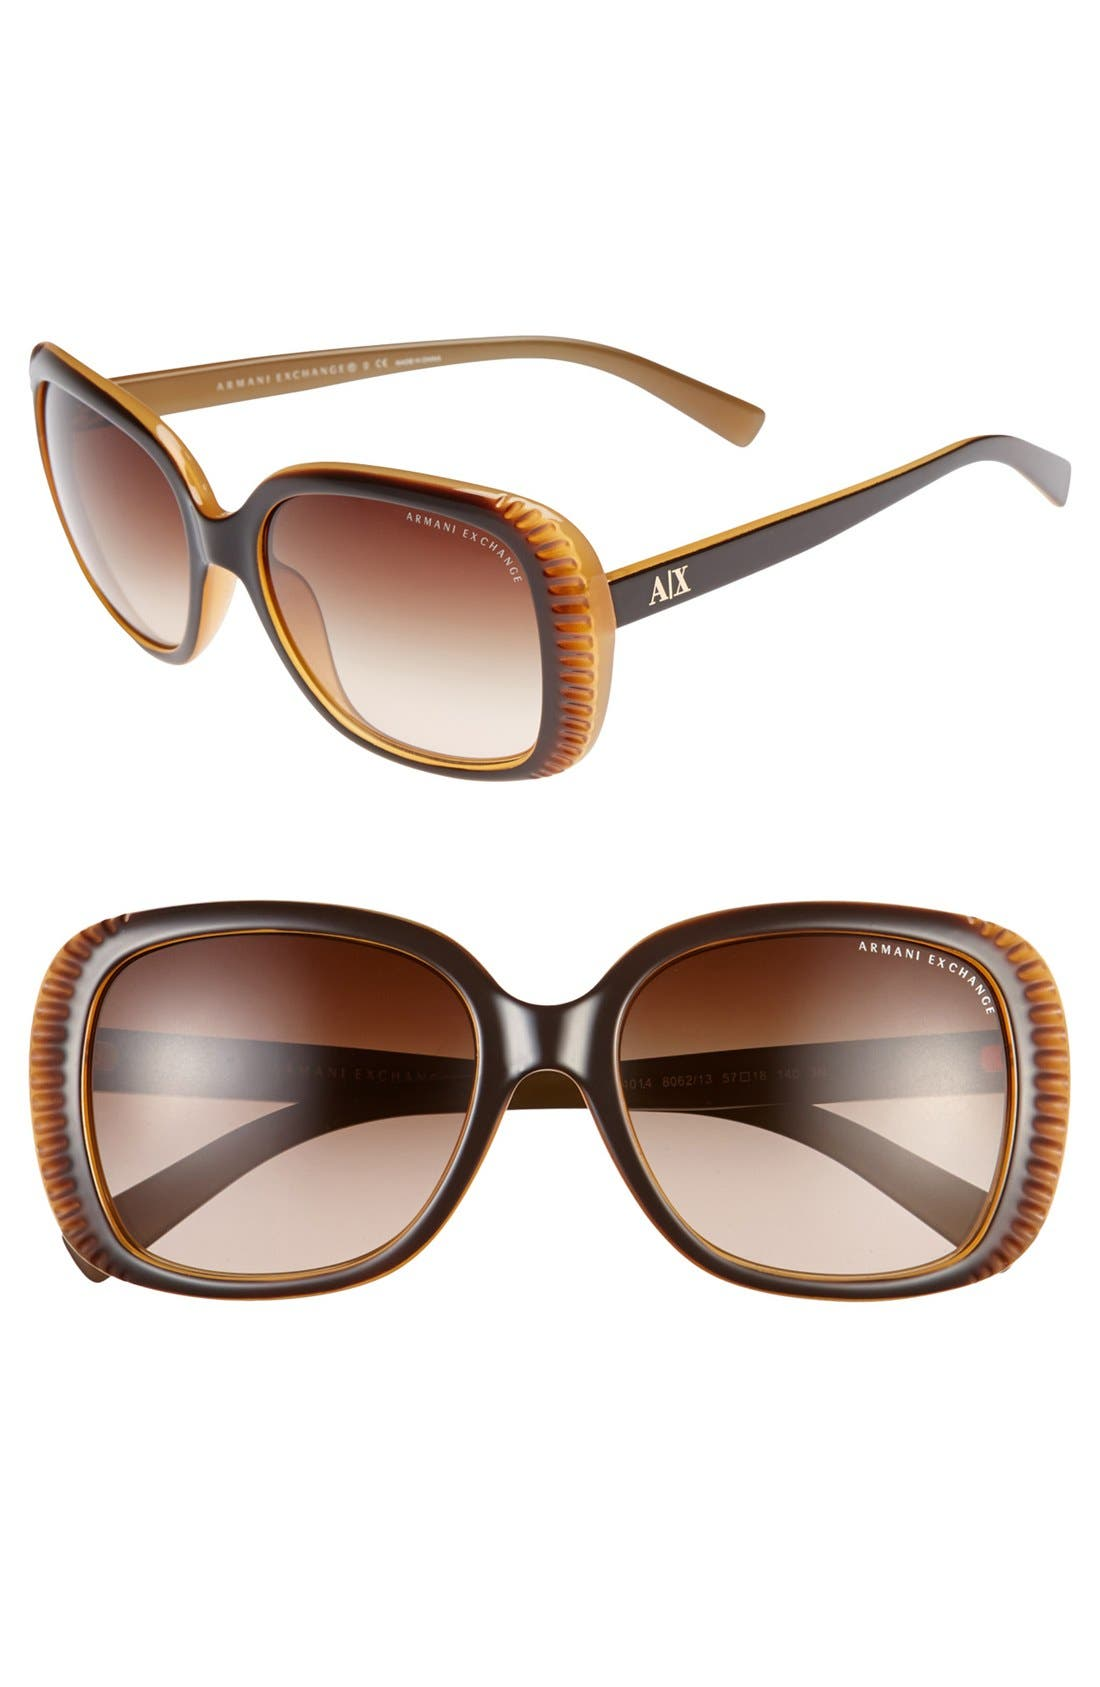 Alternate Image 1 Selected - AX Armani Exchange 57mm Butterfly Sunglasses